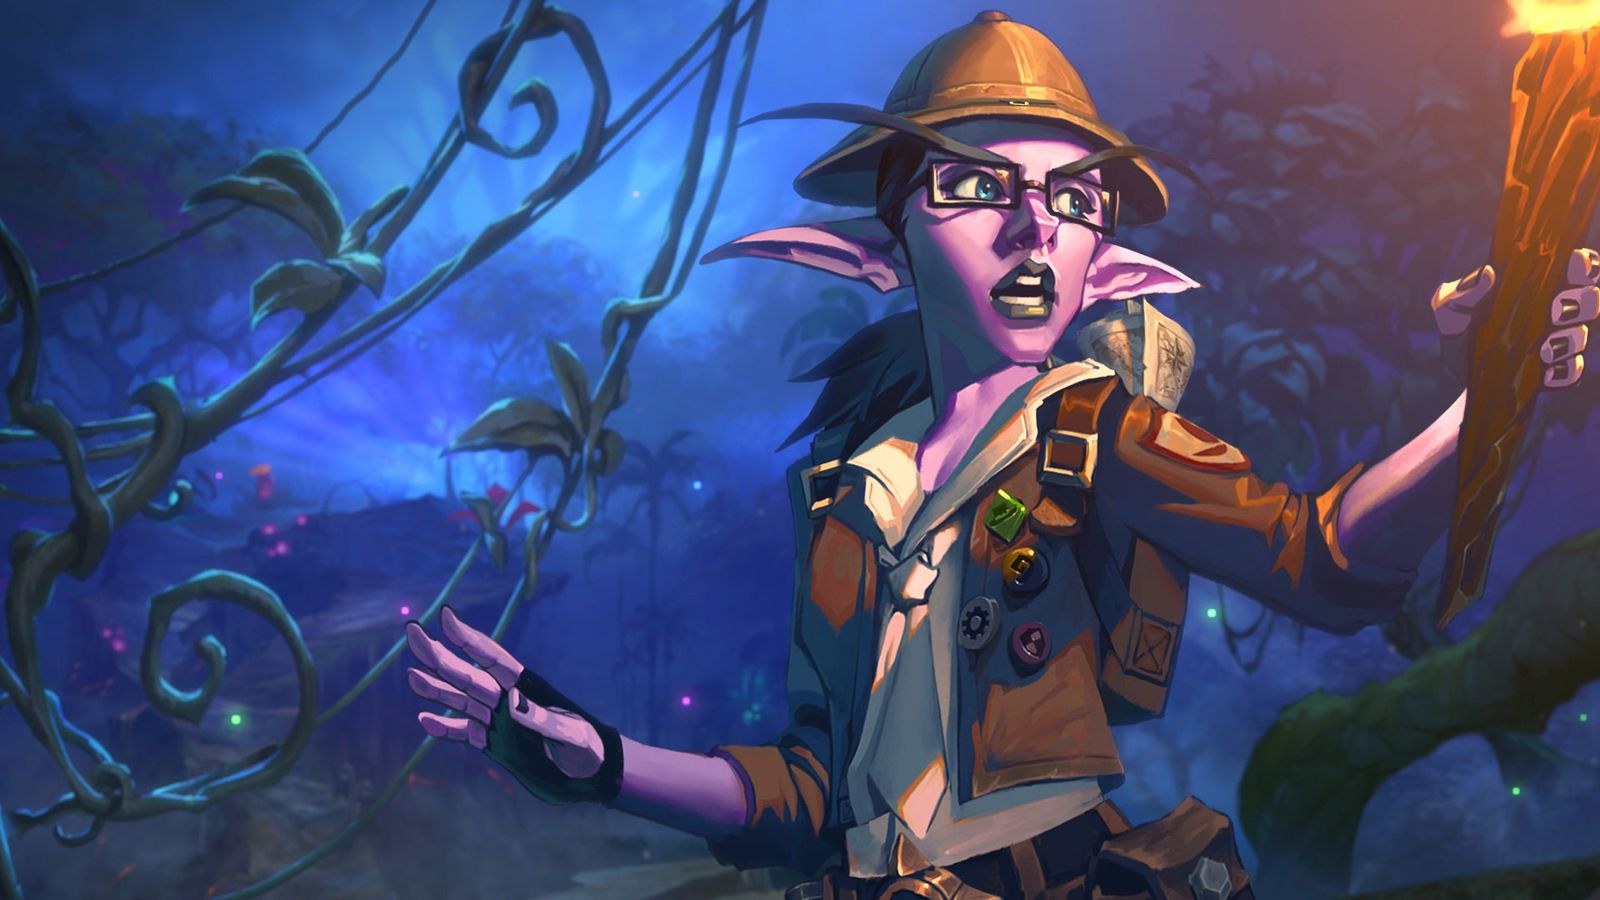 Hearthstone: Journey to Un'Goro expects players to spend too much to be competitive